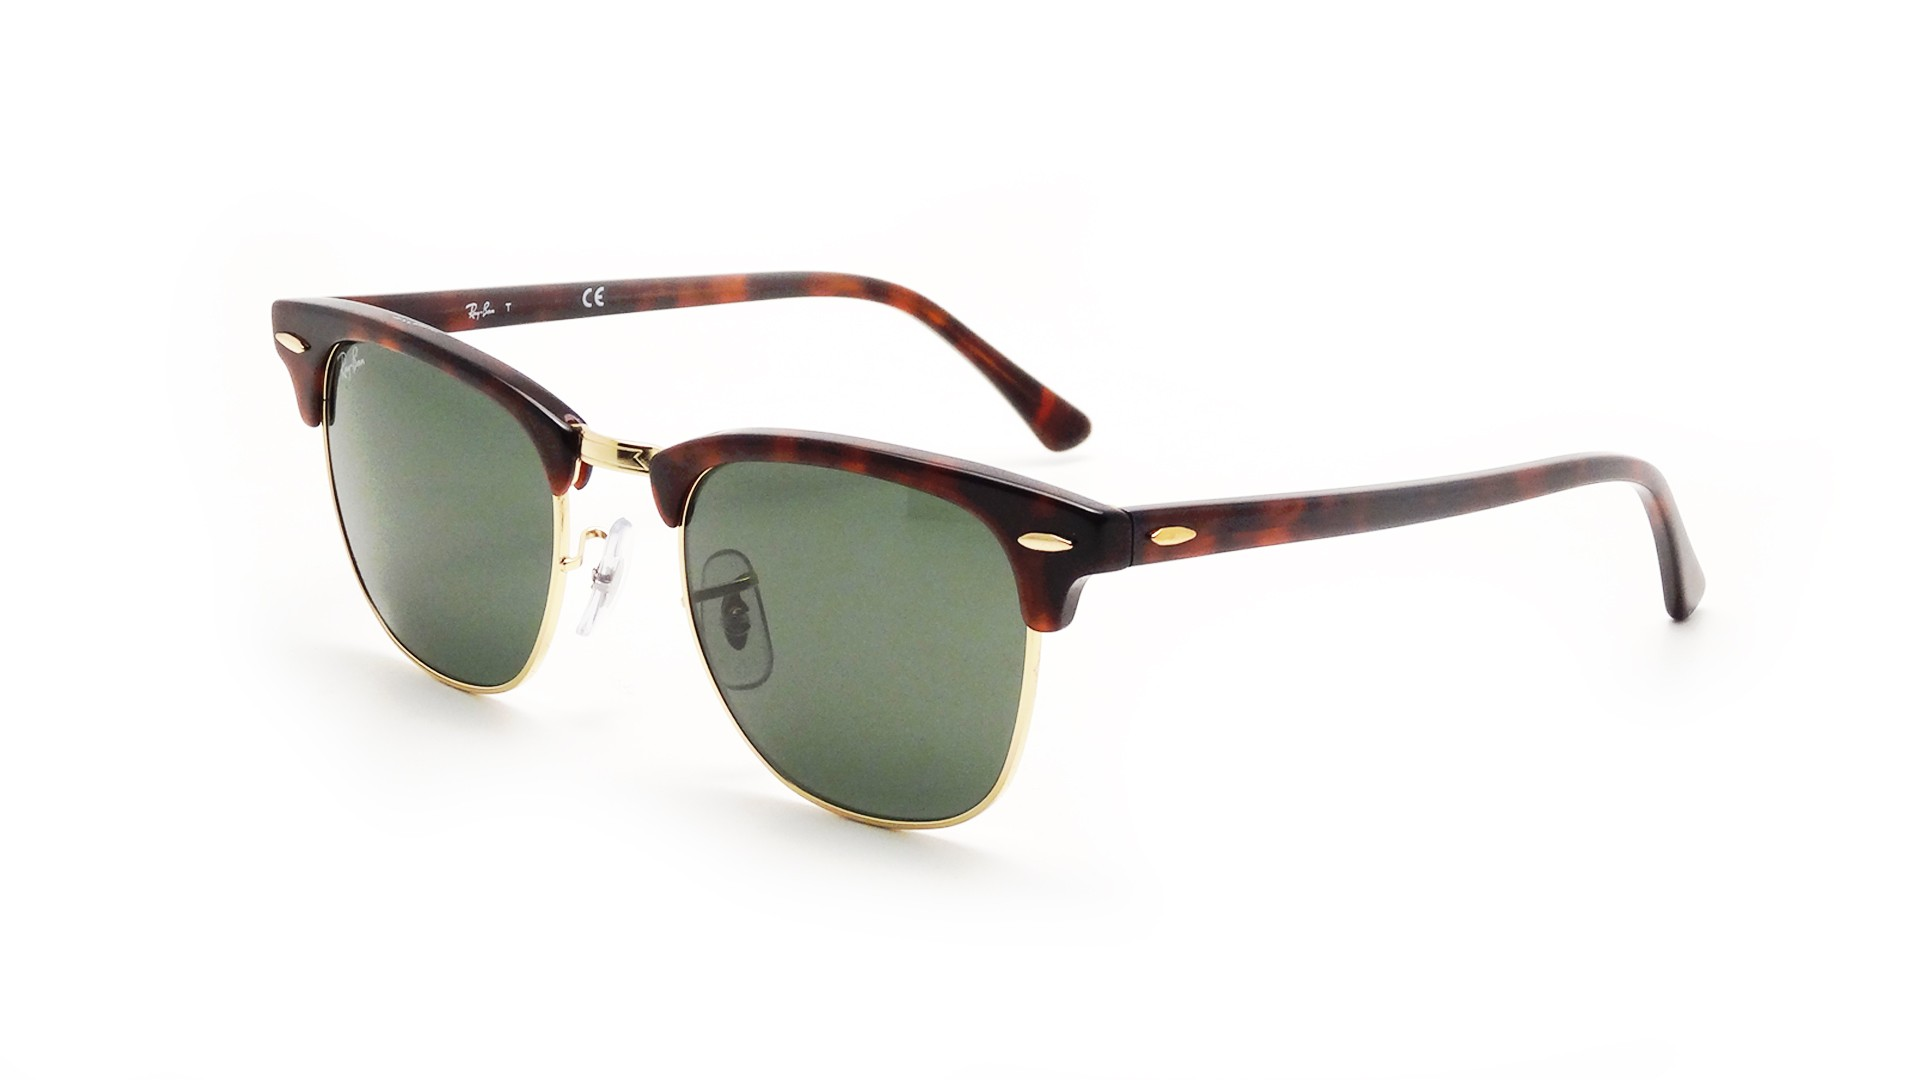 Lunettes de soleil Ray-Ban Clubmaster Classic Écaille RB3016 W0366 49-21  Small f0b89fb83b9c